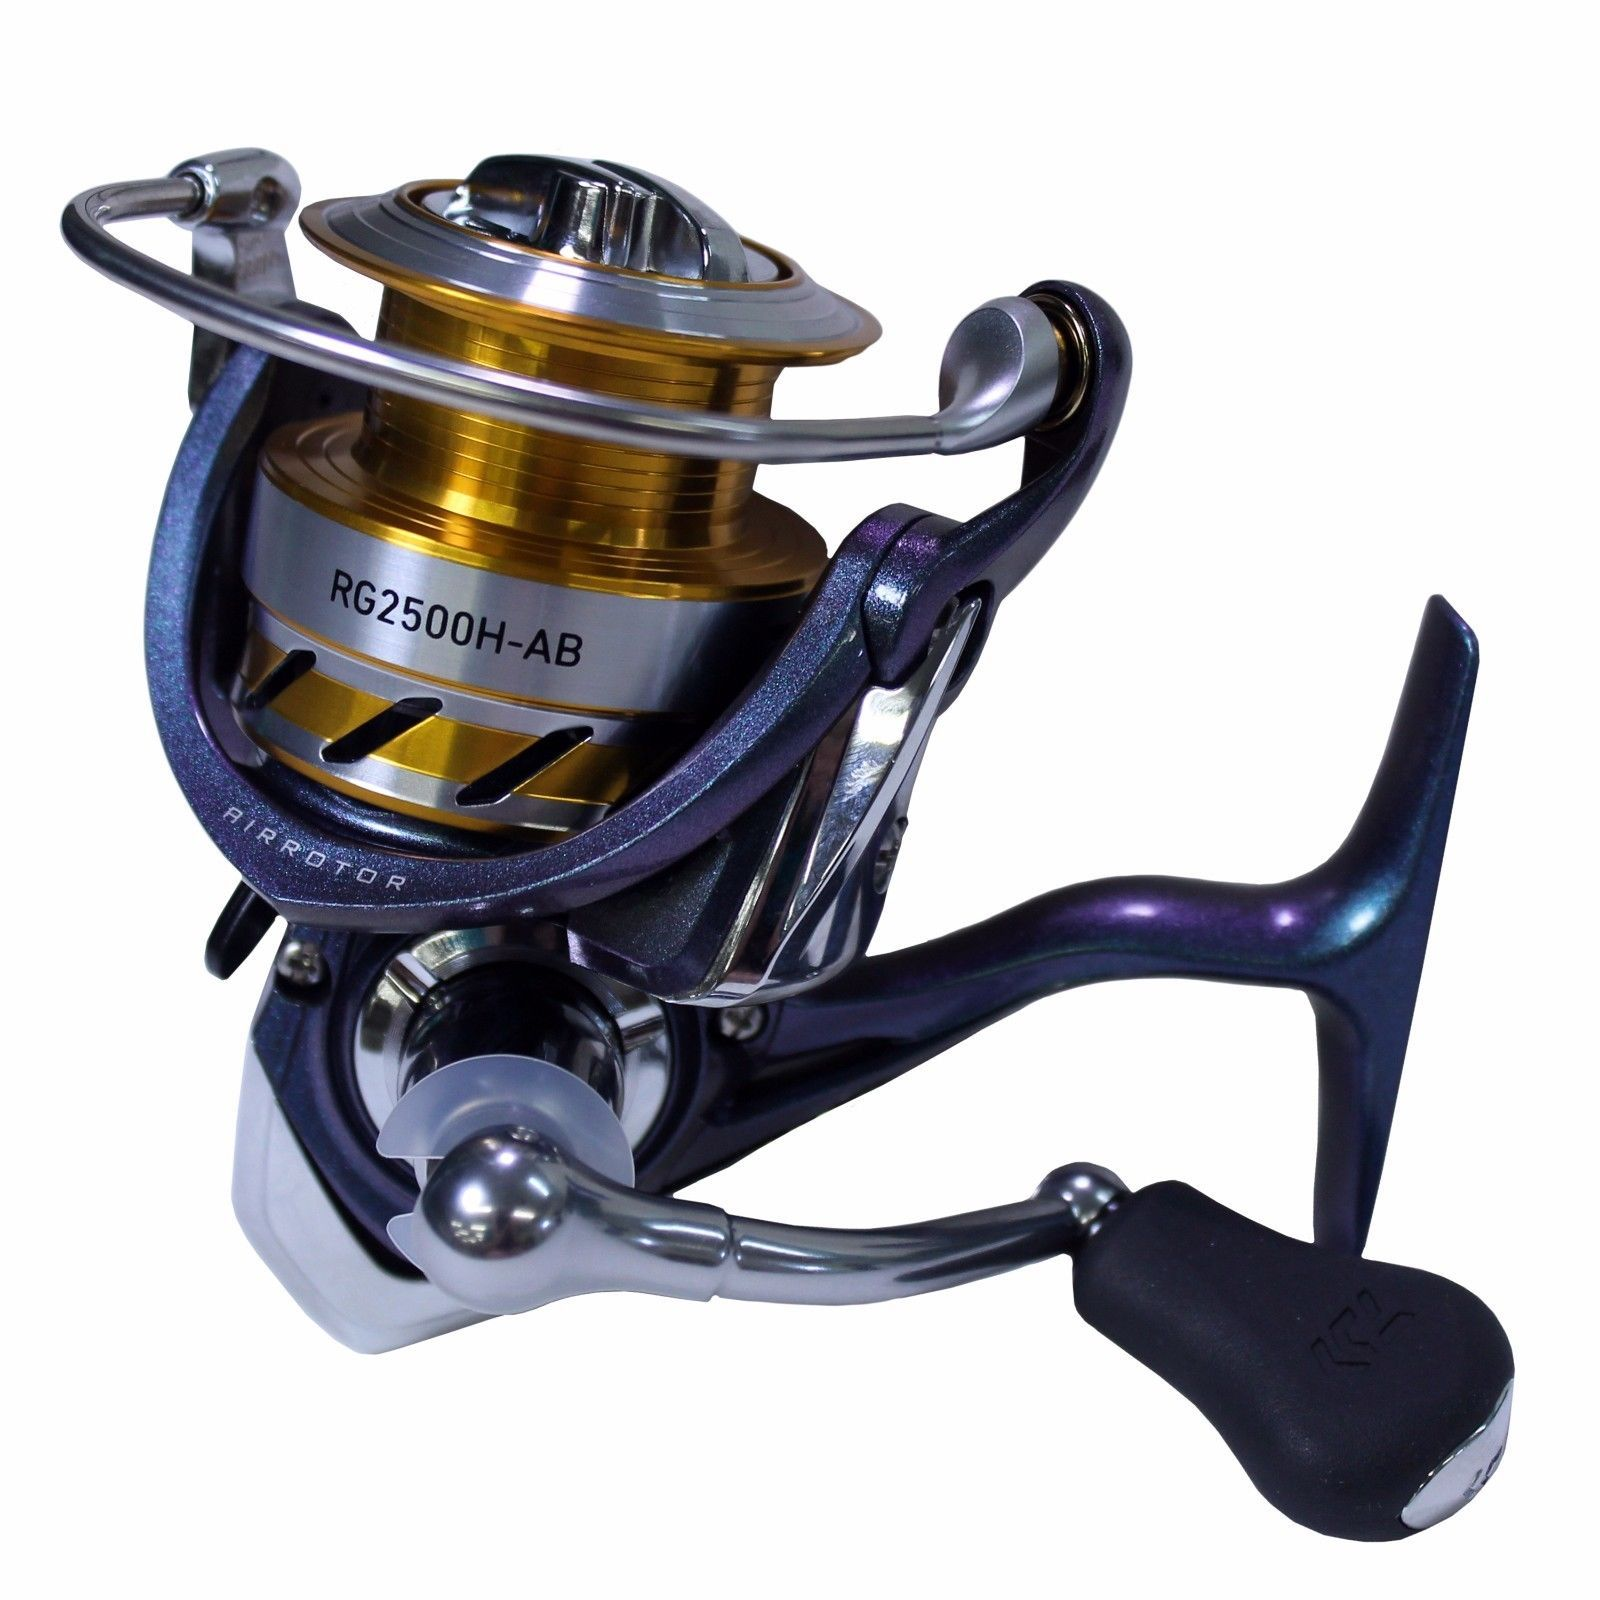 cfd62b69d36 Daiwa Regal RG-AB Spinning Fishing Reel Left/Right Hand - 5.6:1 -  RG2500H-AB #fishing #outdoors #camping #hooks #fish #camp #ad #survival  #prepper #reels ...